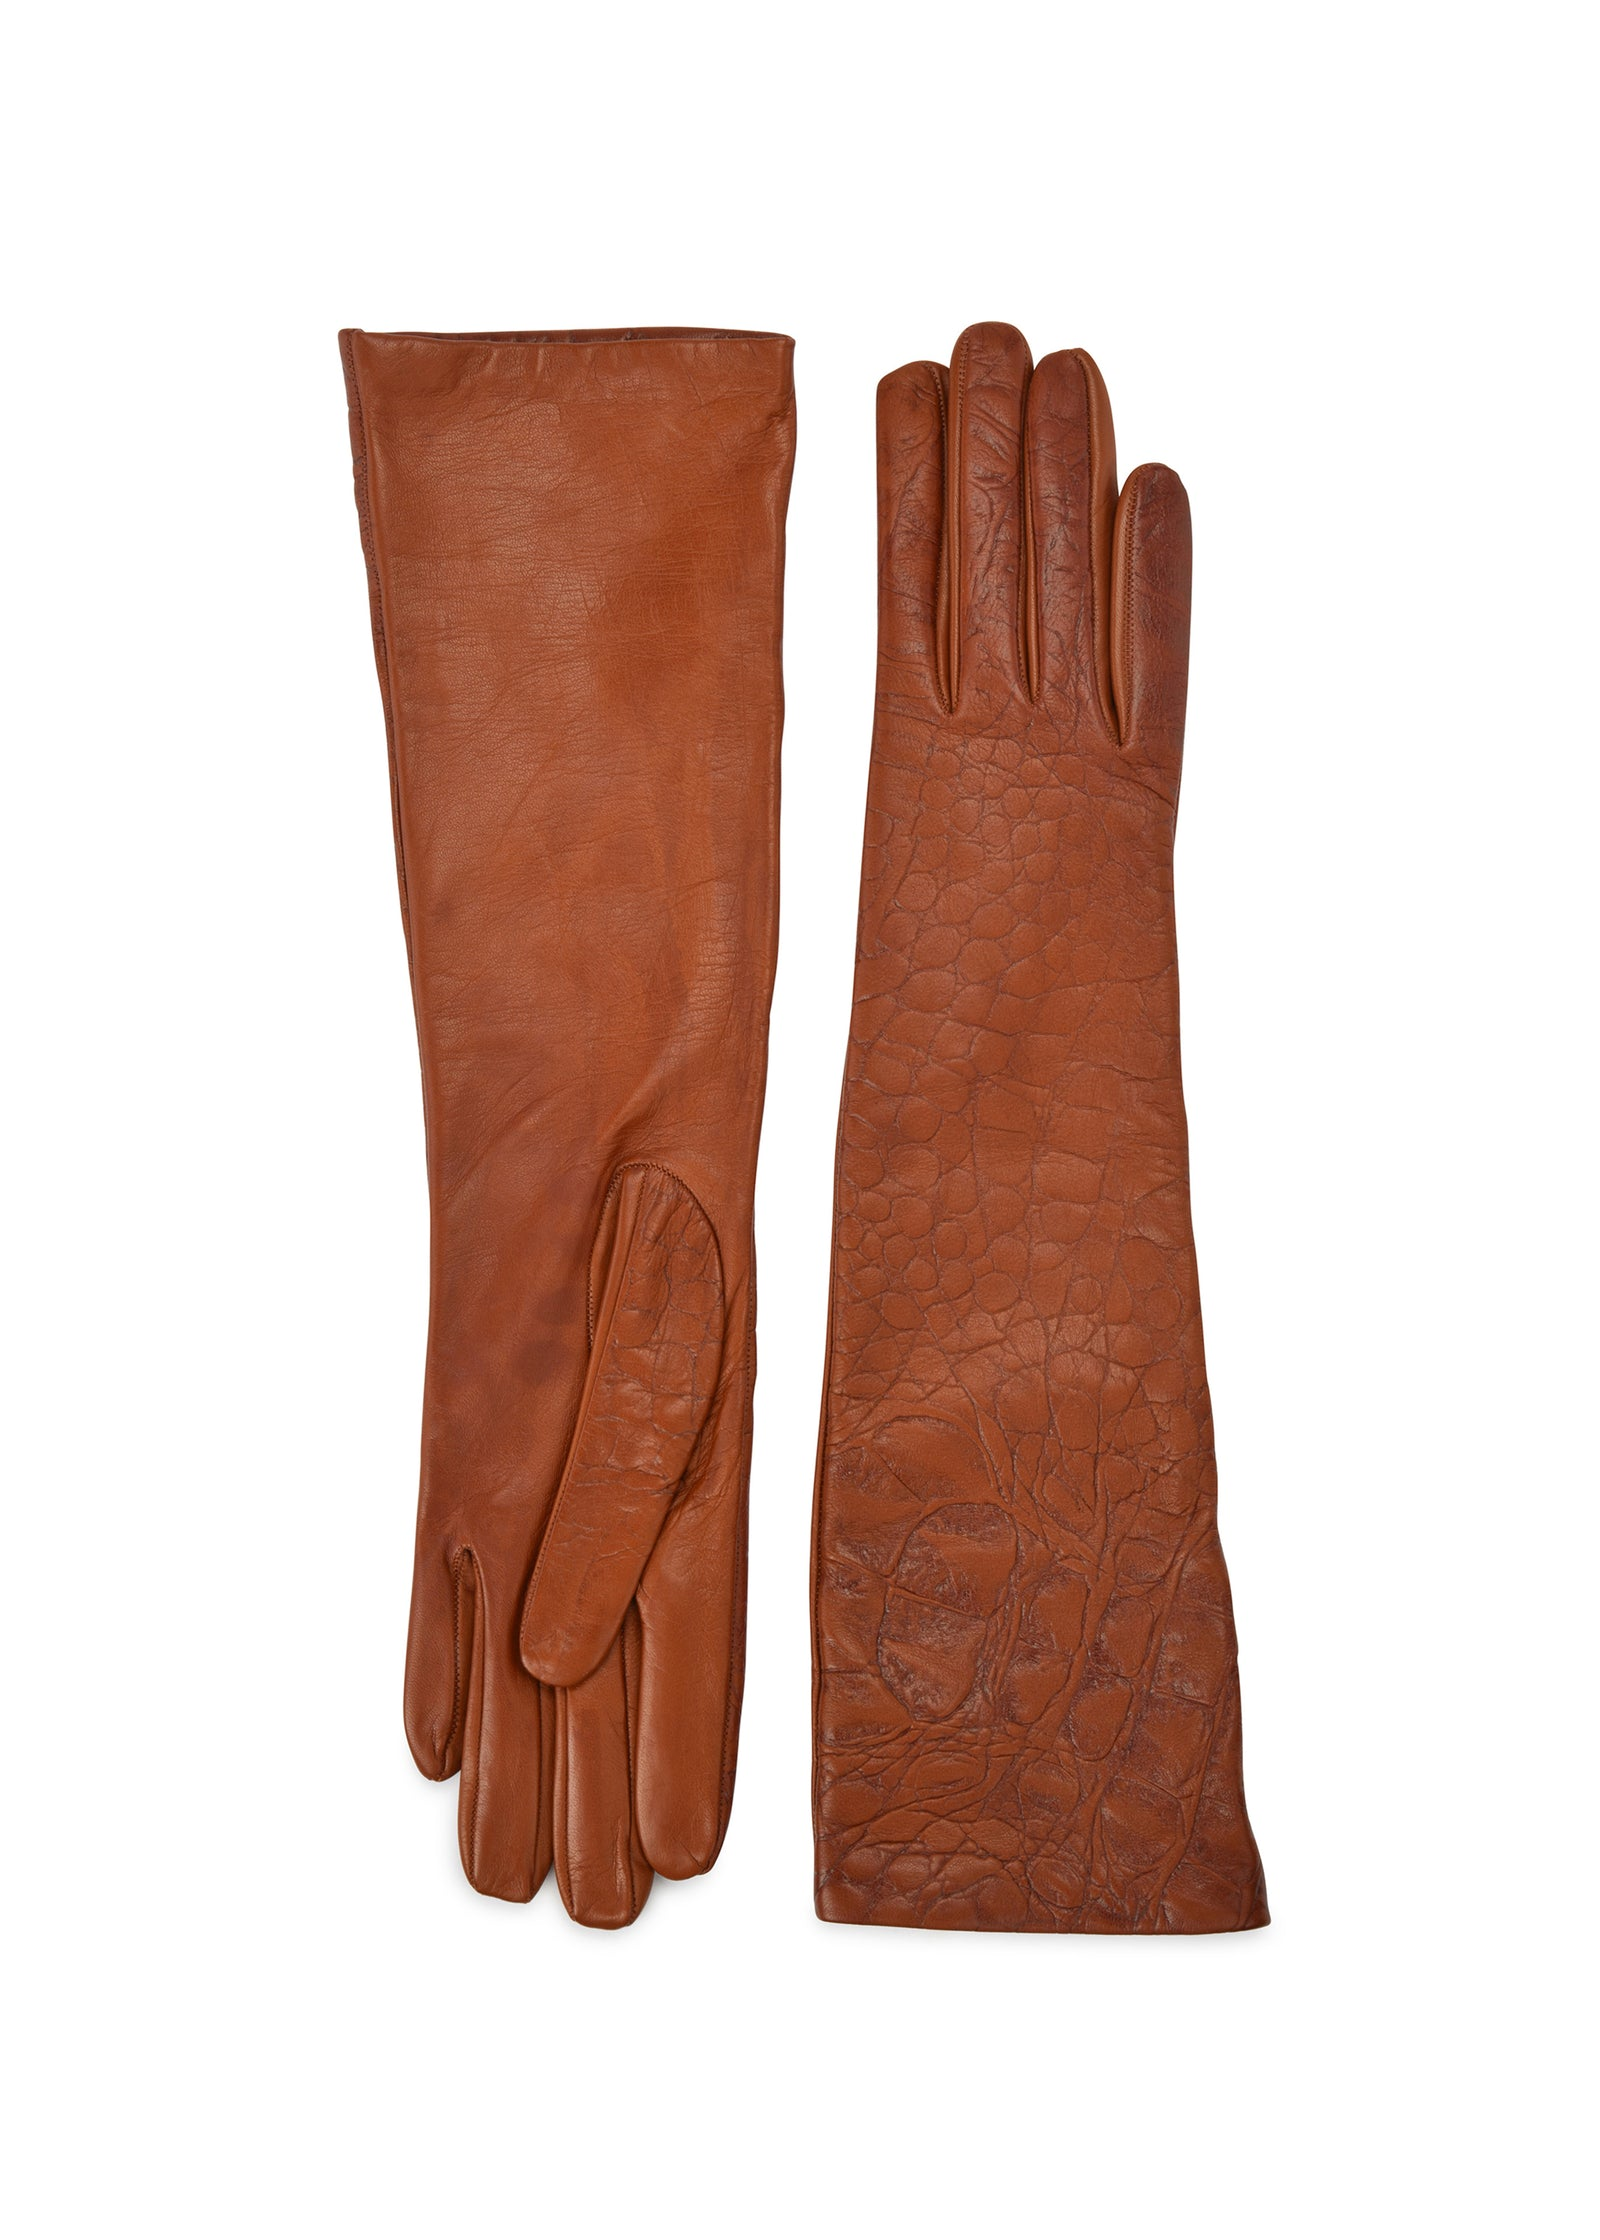 womens natural croco embossed lambskin silk lined elbow length glove made in Italy